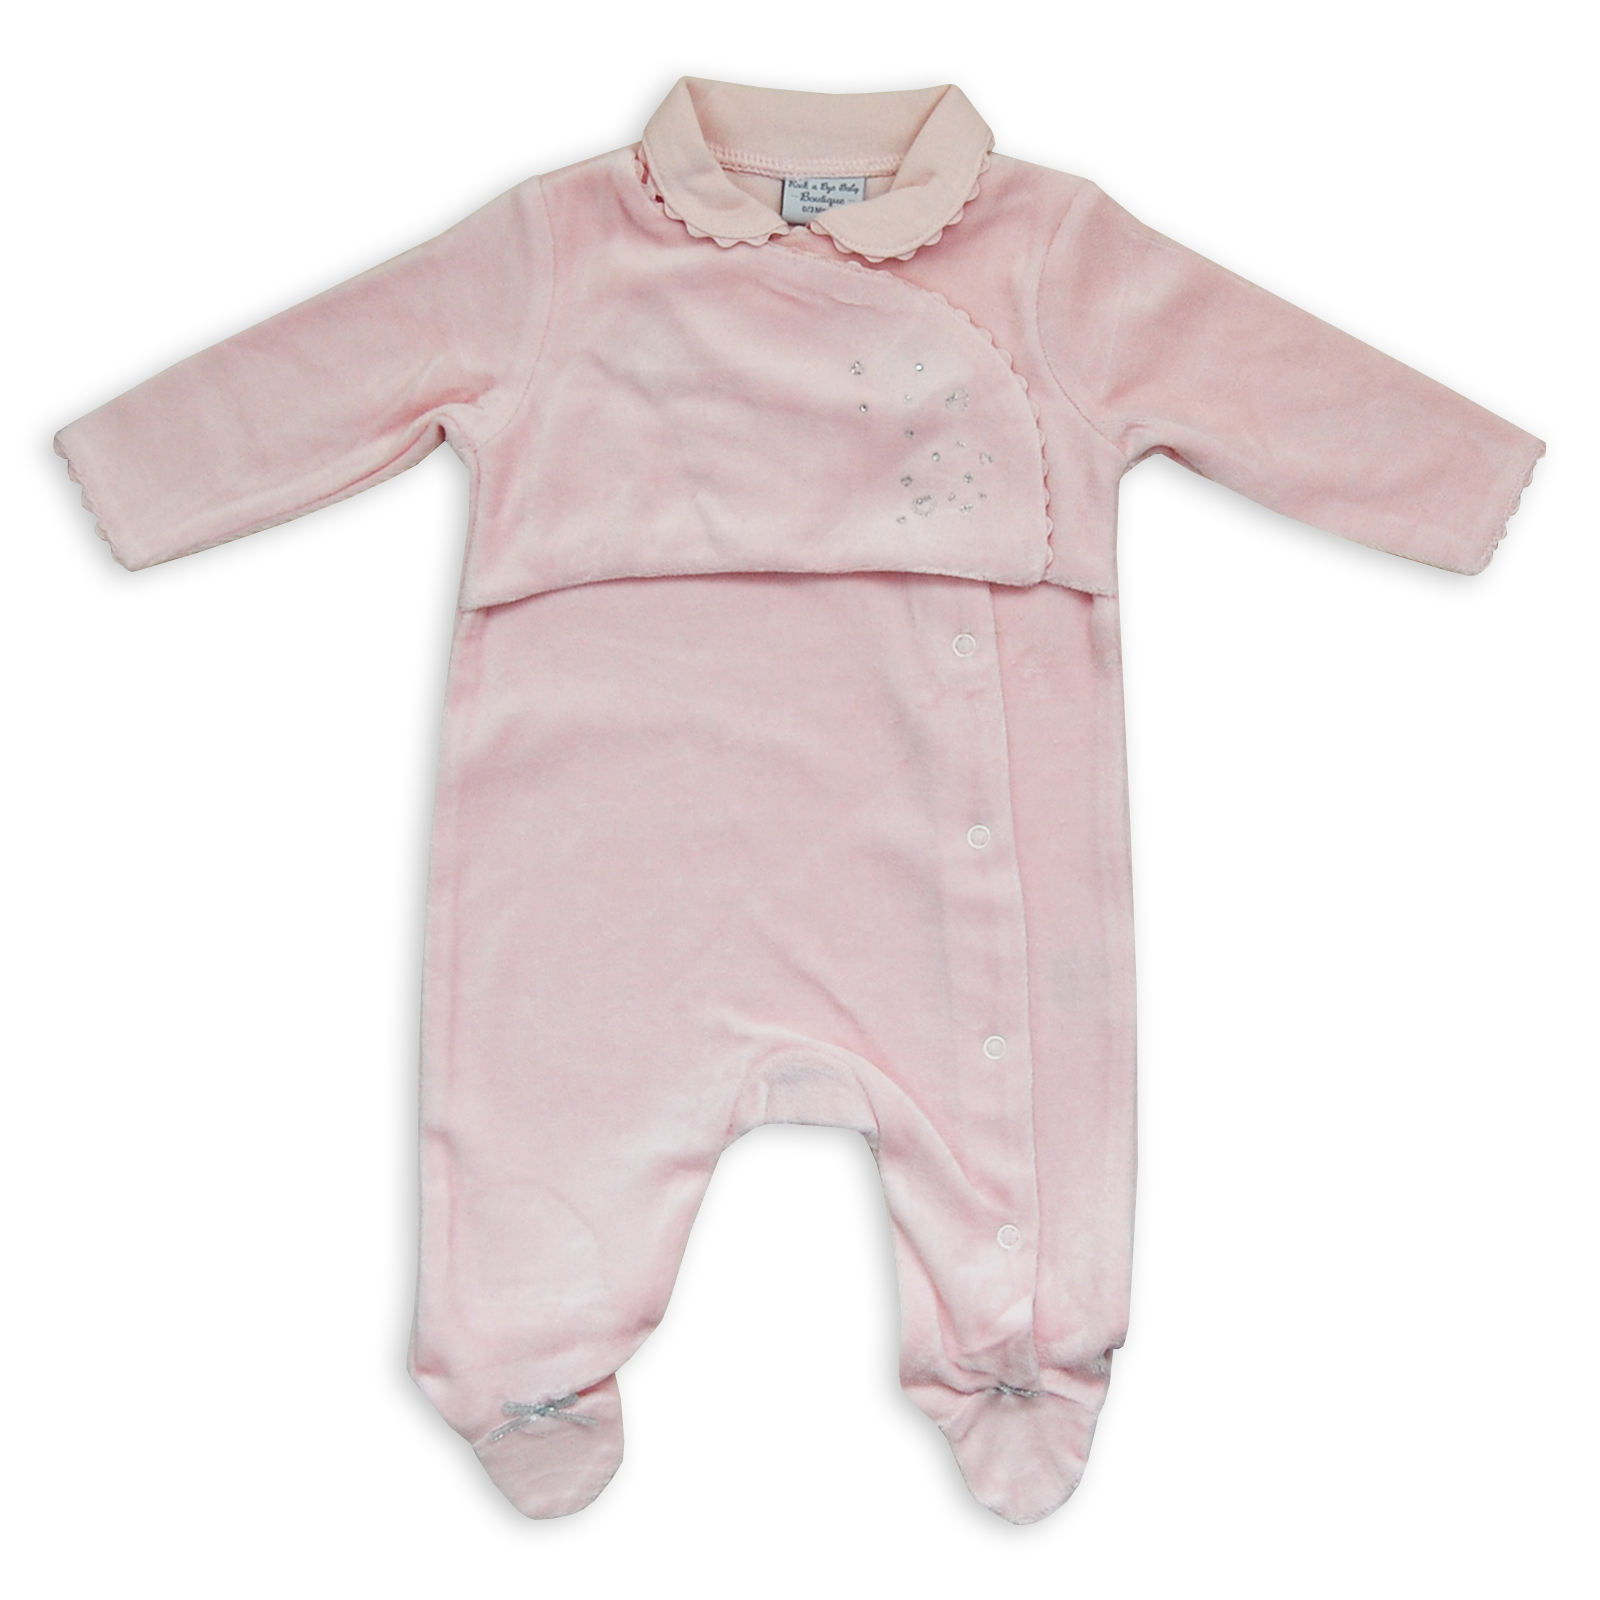 'I'm in the Clouds' Velour Sleepsuit A beautiful soft velour sleepsuit that fastens down the back with poppers. It has an all over embossed cloud design with a cute applique on the front with the words 'I'm in the Clouds' embroidered underneath.